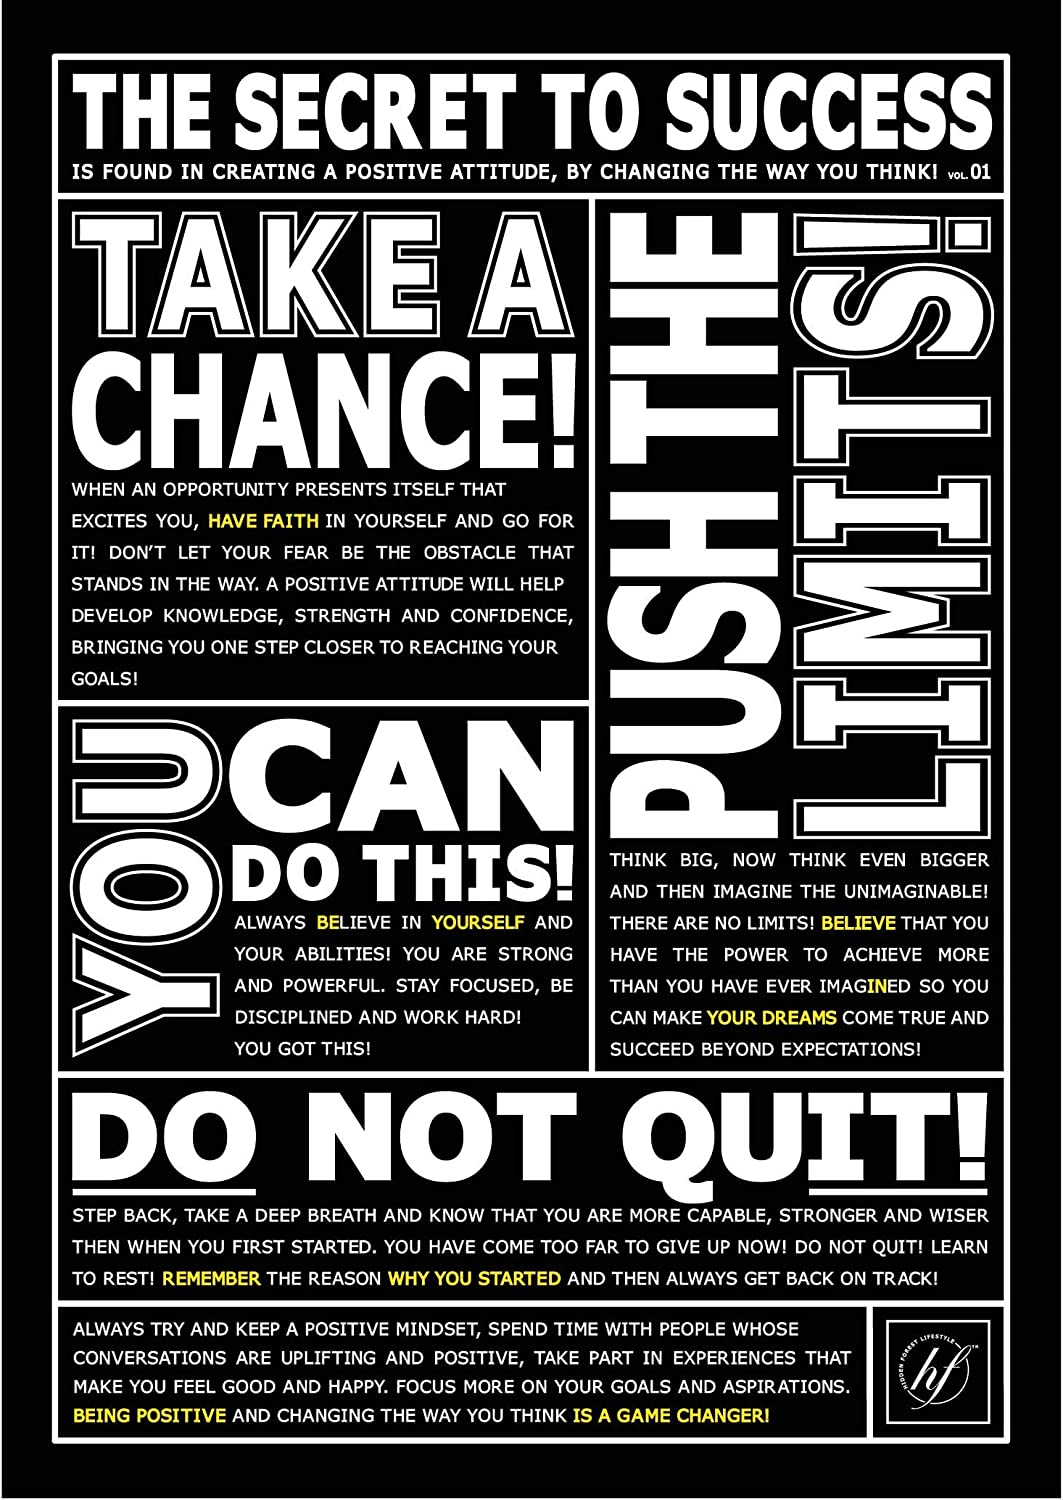 HFL The Secret to Success Motivational Poster:11.7x16.5 inch Poster for Office Decor, College Dorm, Teachers, Classroom, Gym Workout & School! Inspirational Wall Art to Change your Mindset for Growth